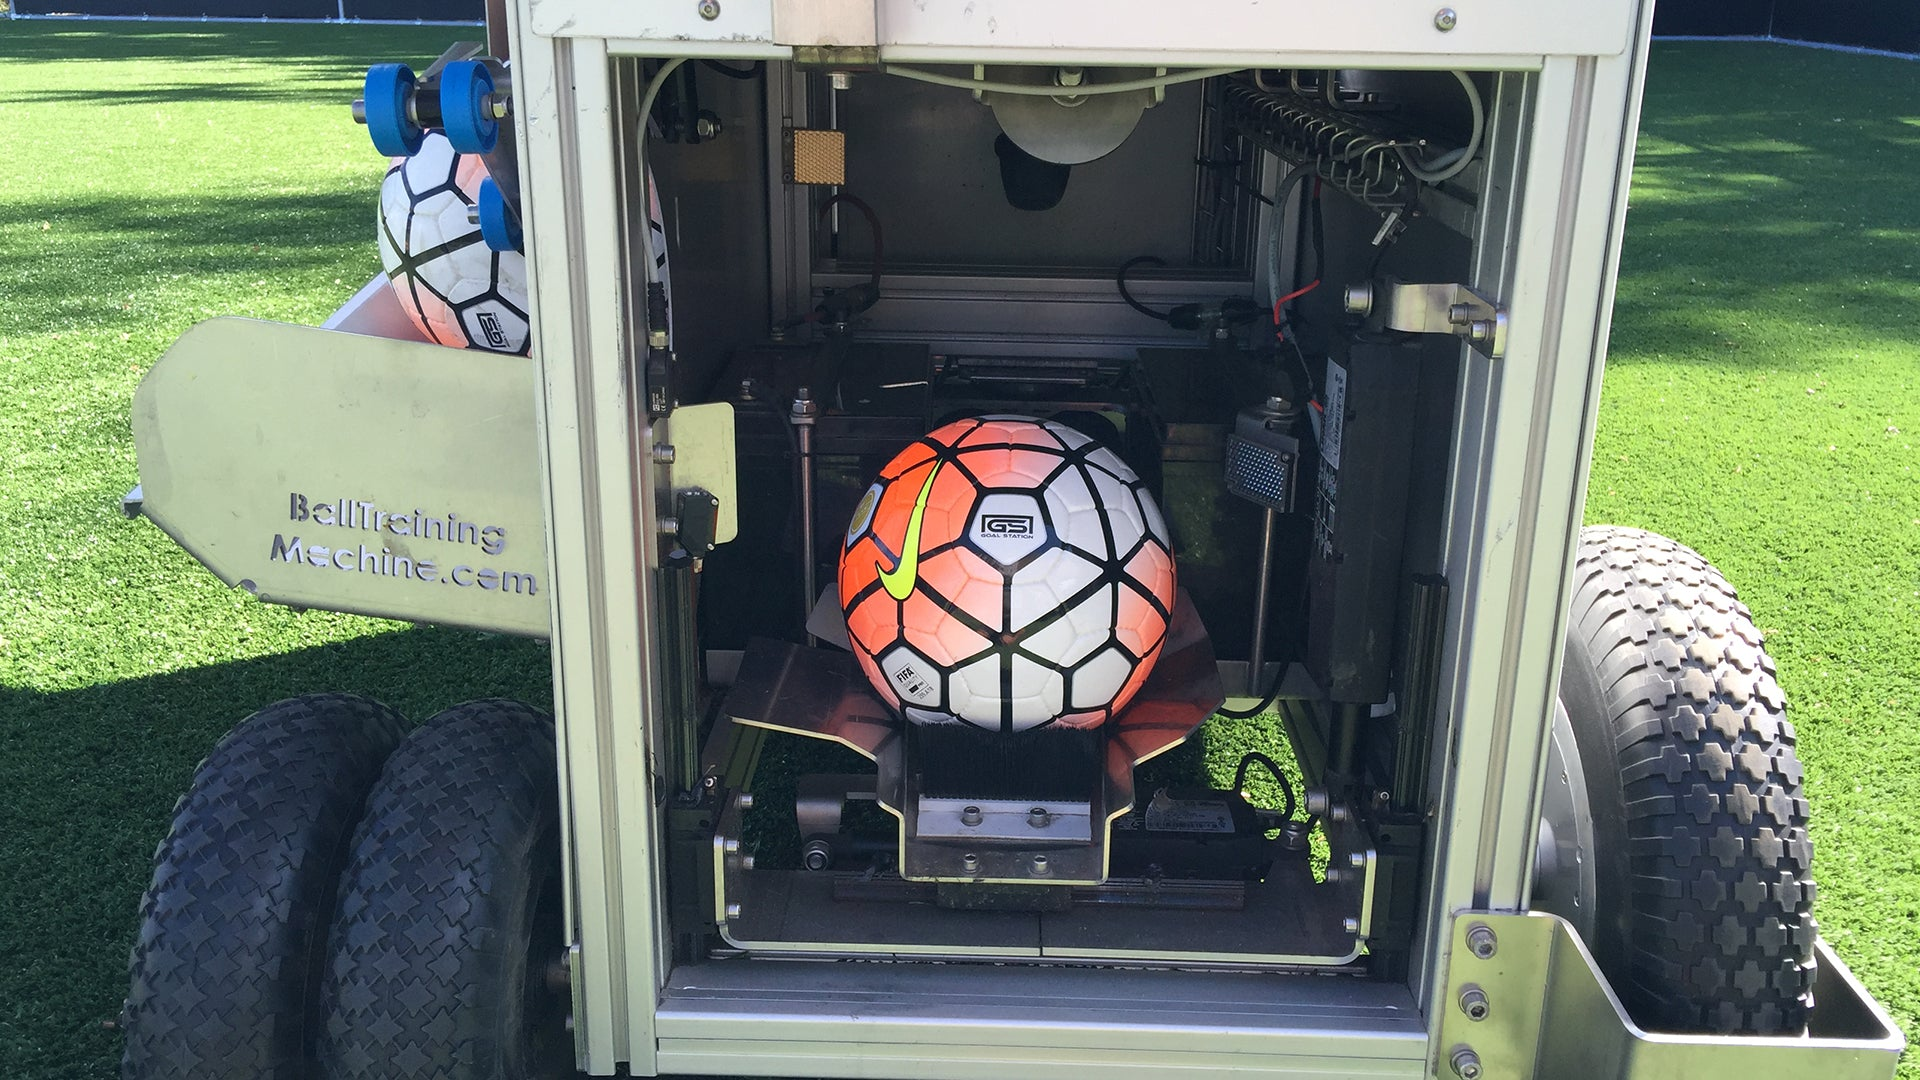 BALL TRAINING MACHINE